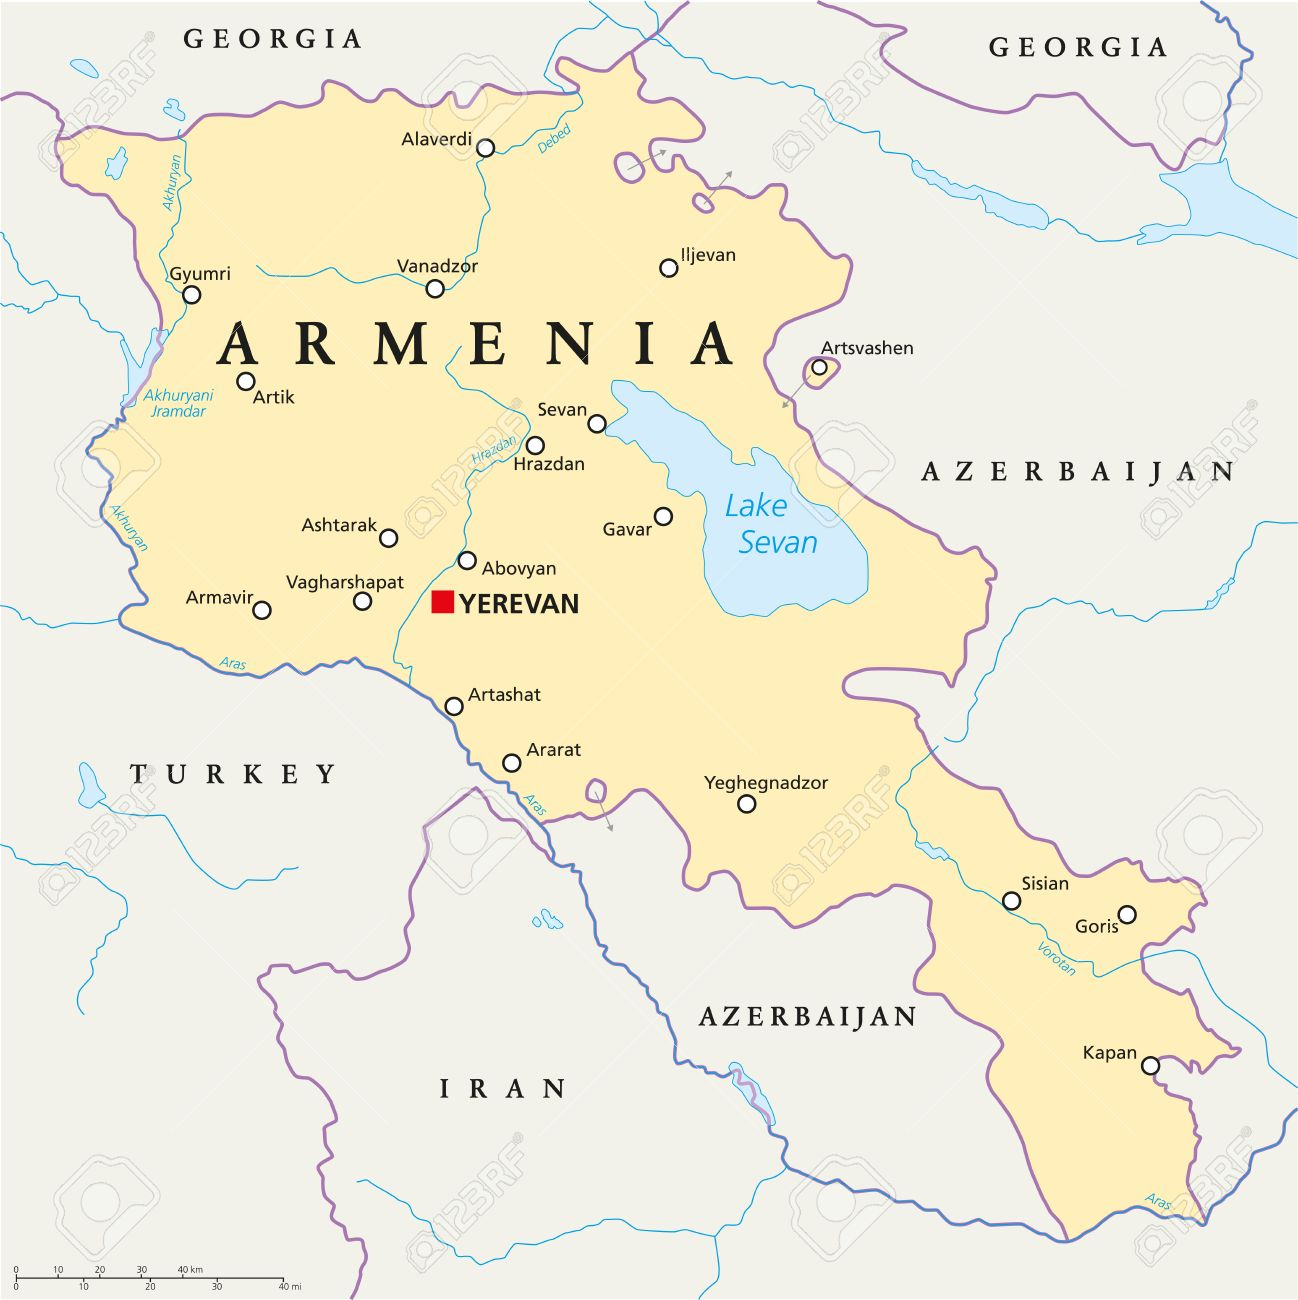 Armenia Political Map With Capital Yerevan, National Borders